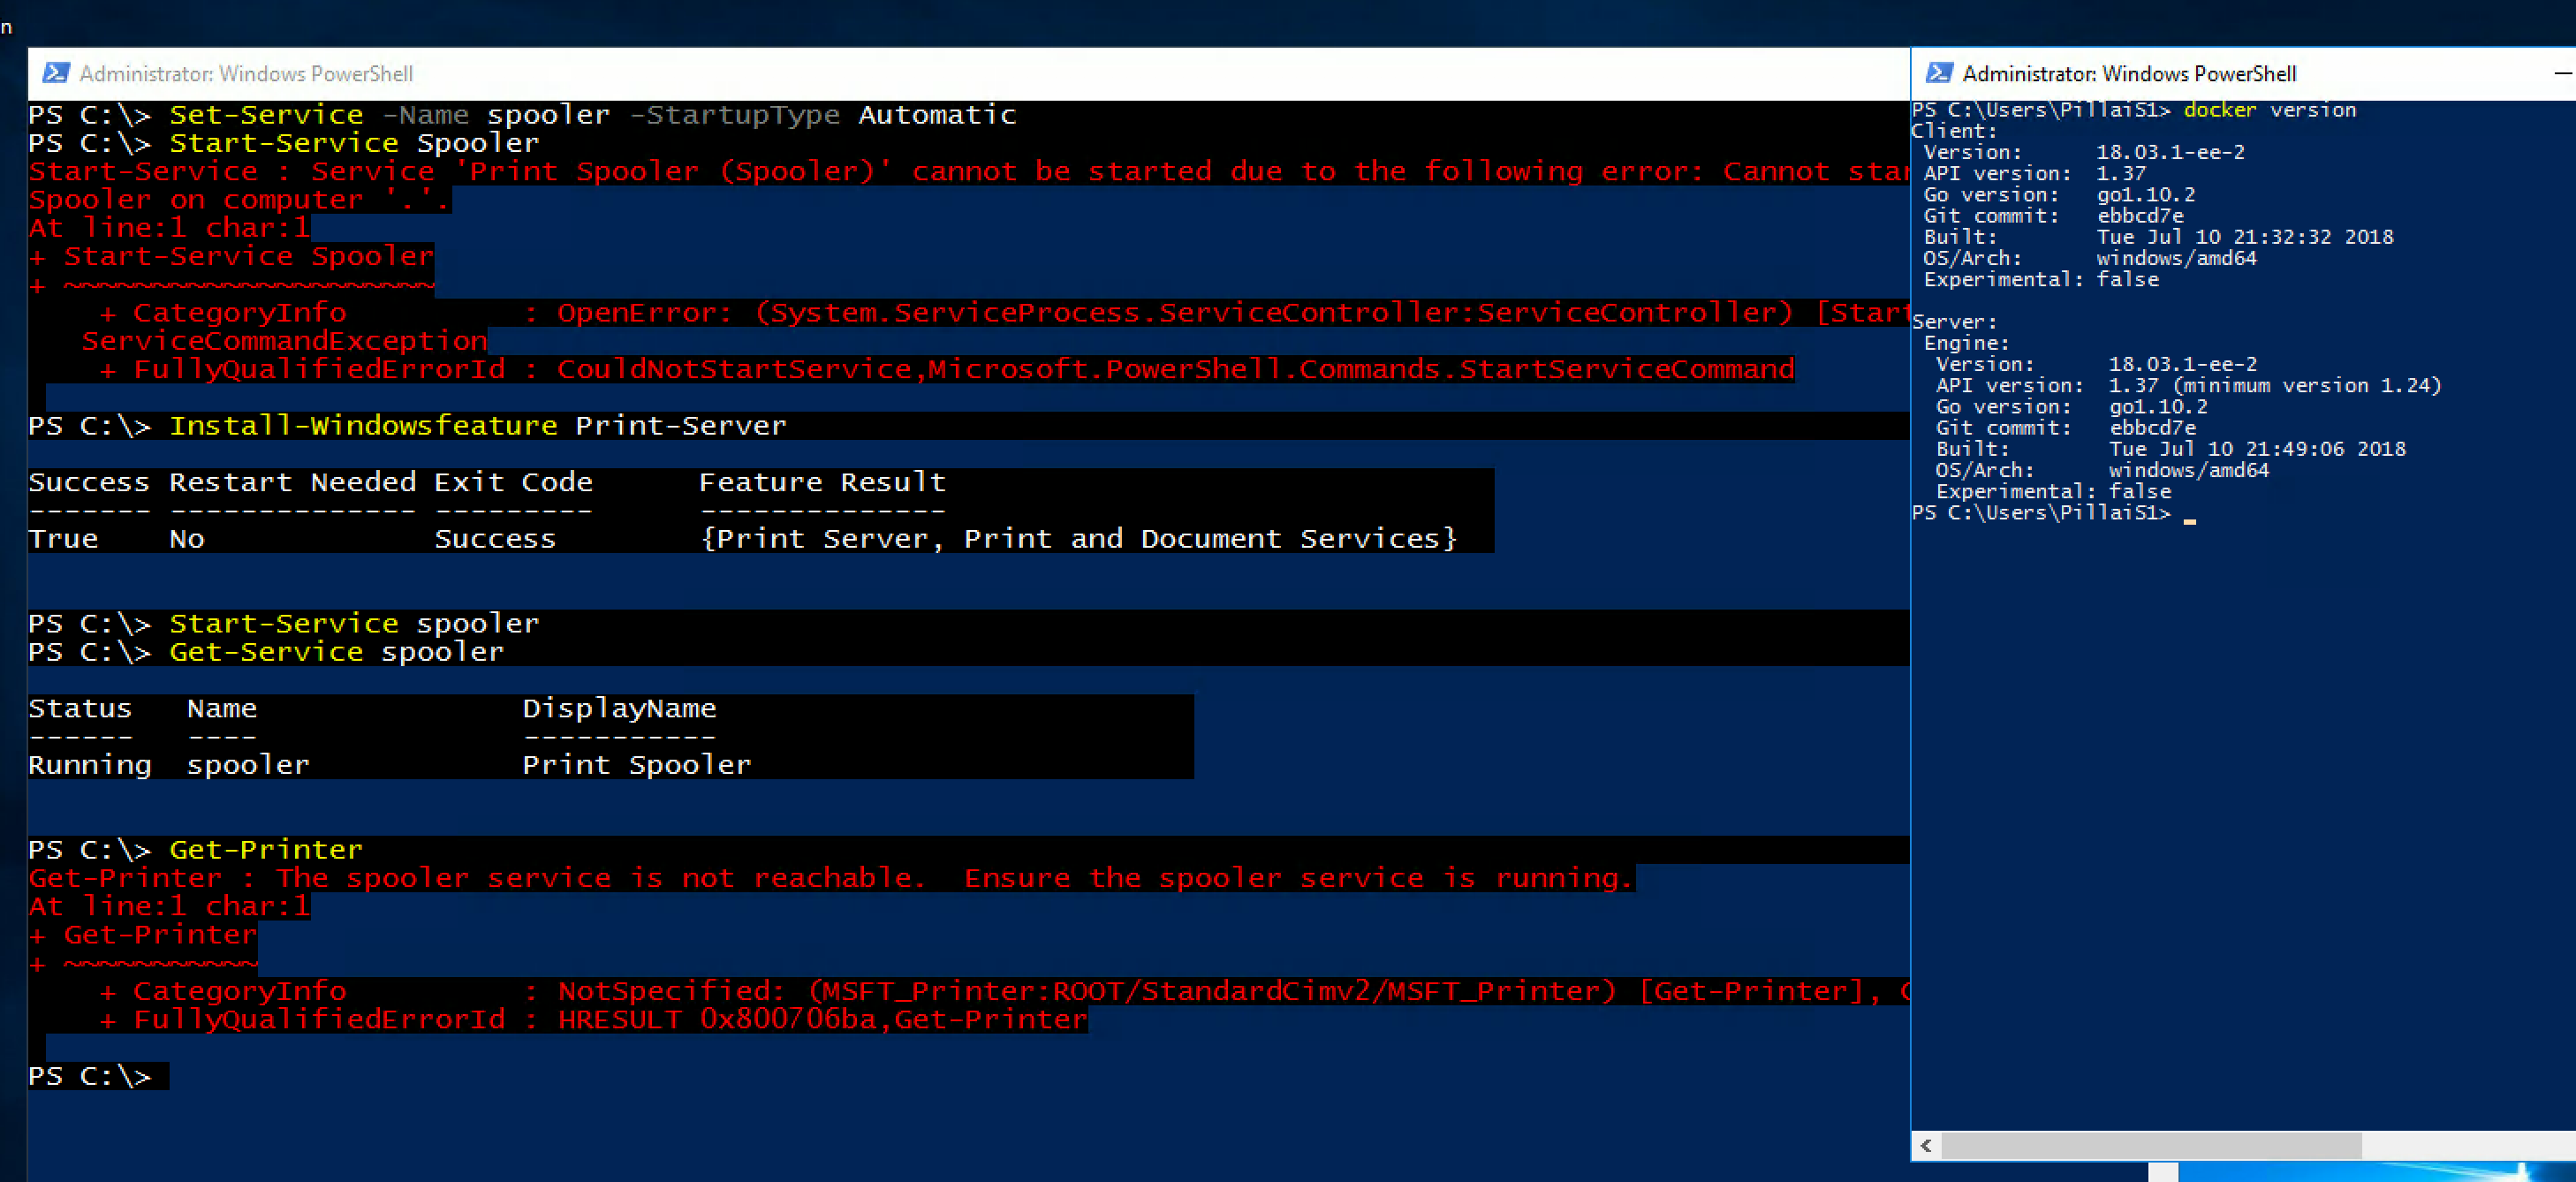 Windows Container - spooler service crashes without warning